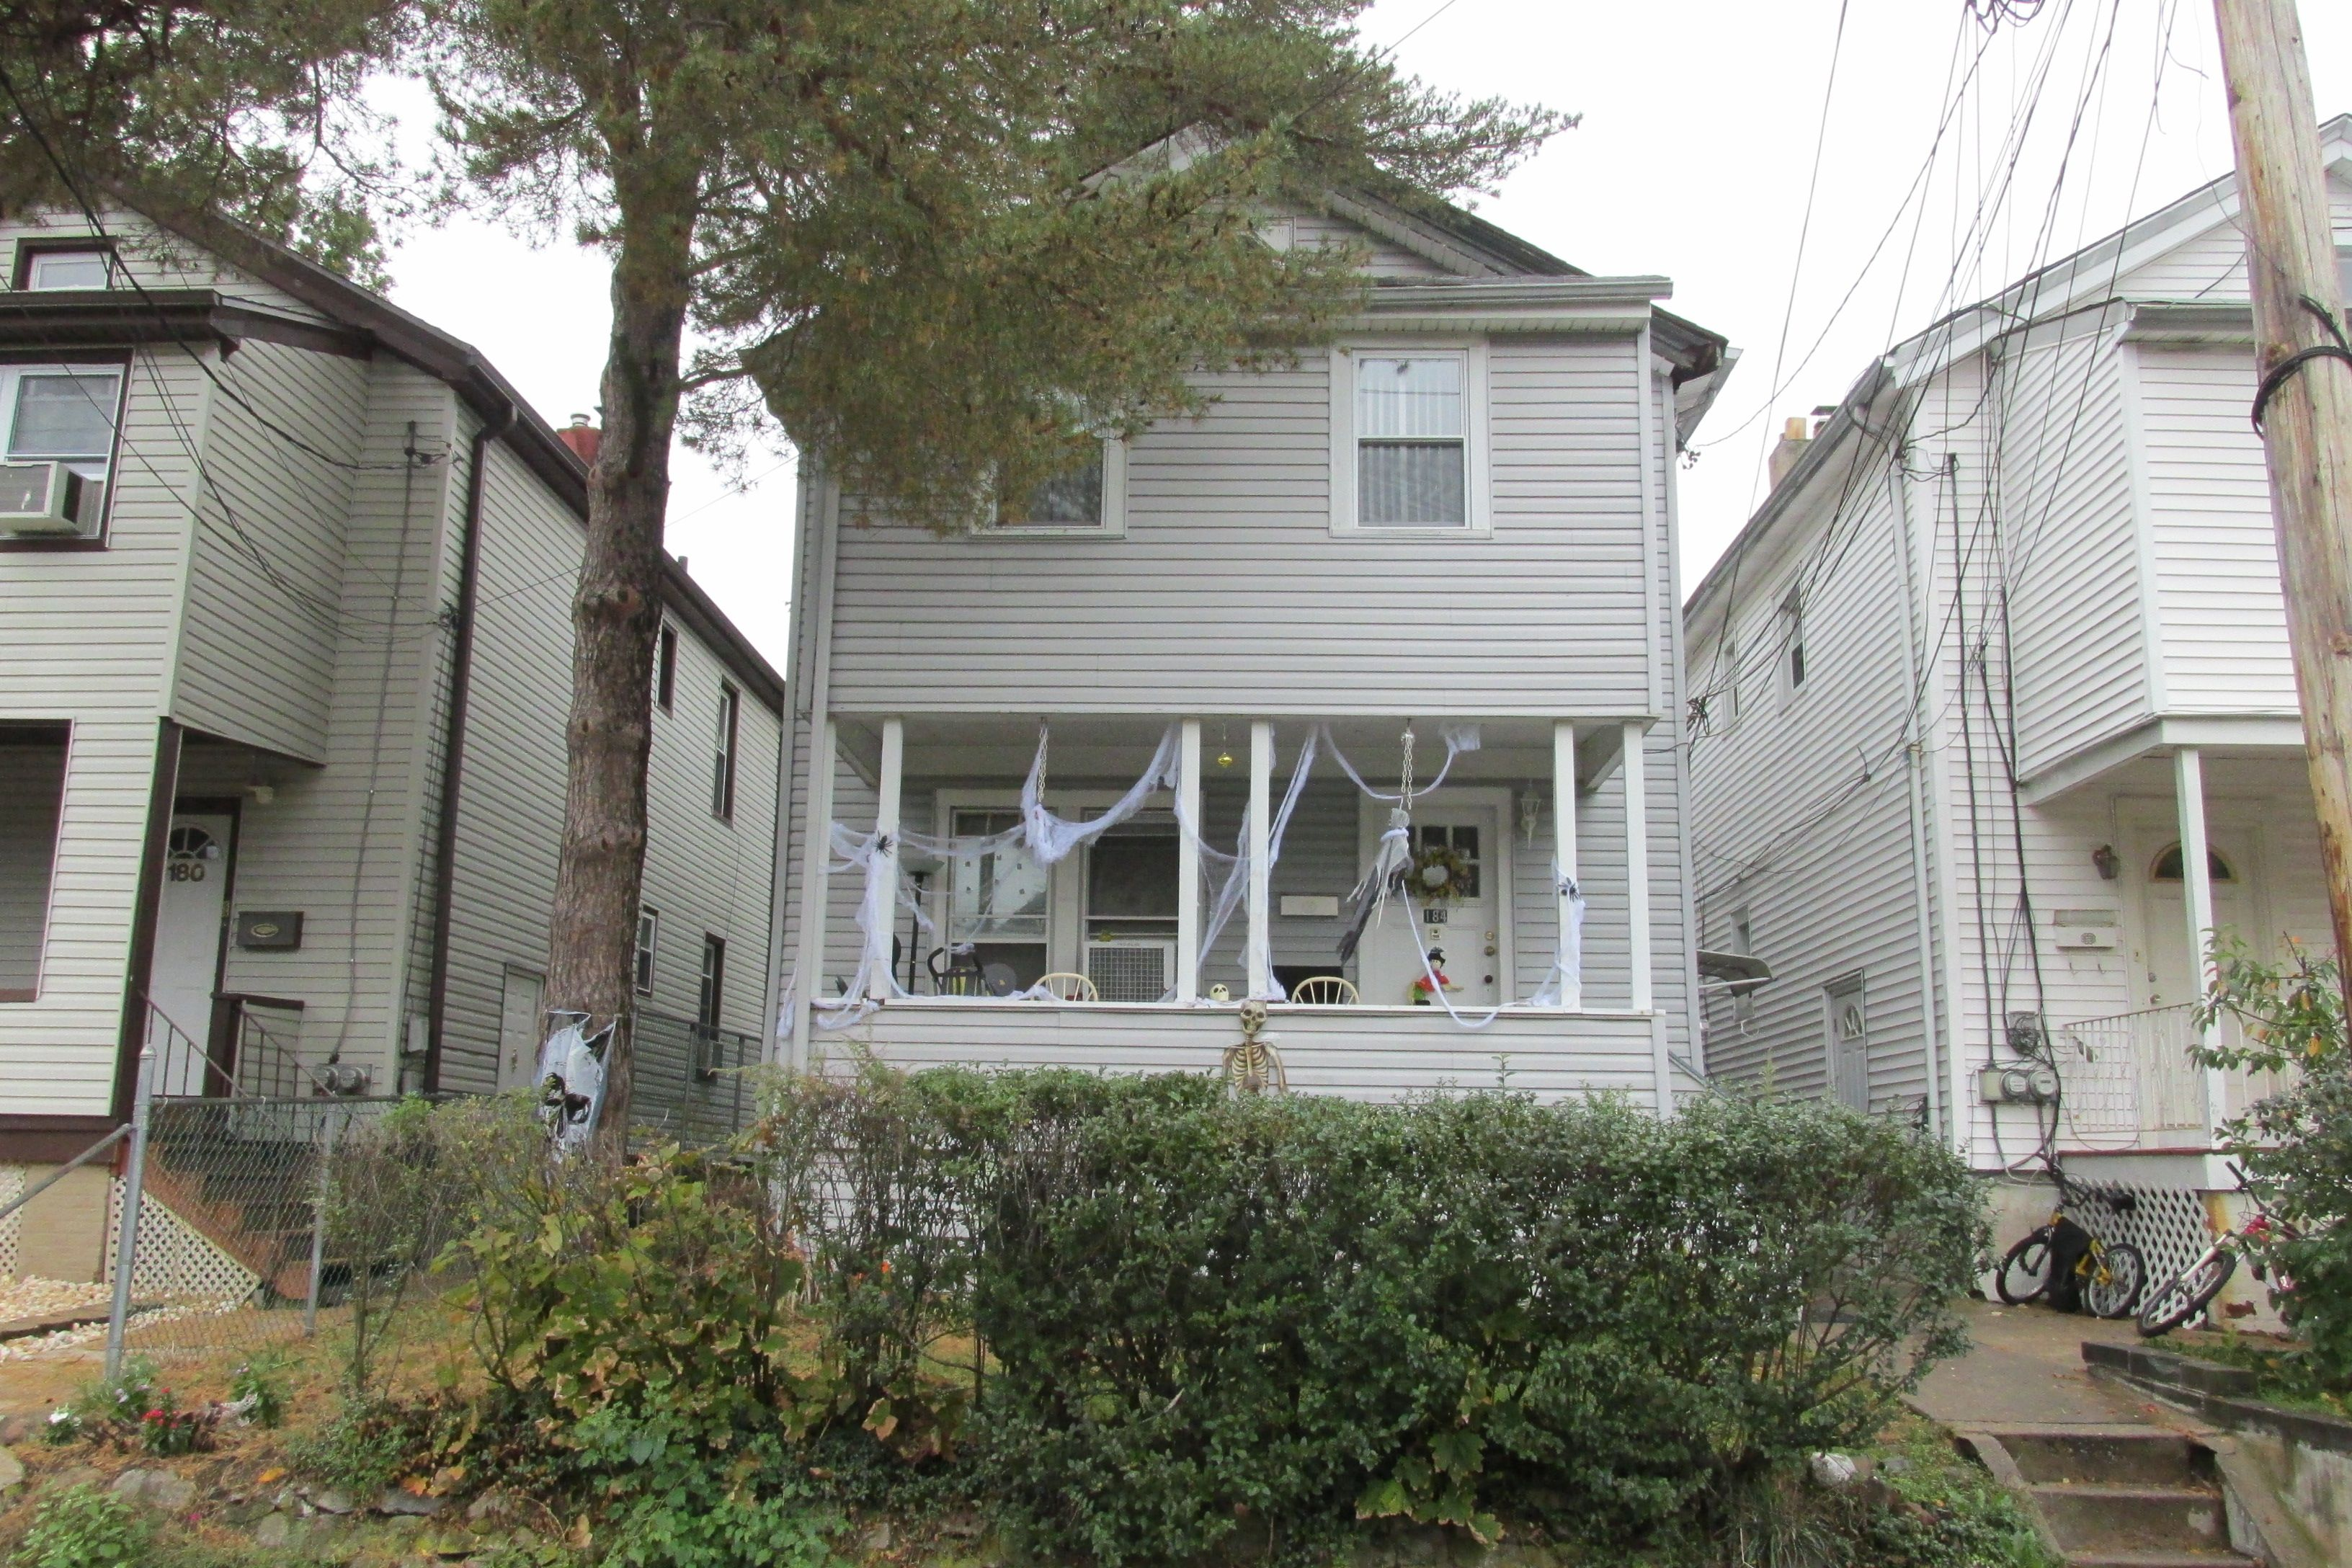 184 West St, Englewood, NJ 07631